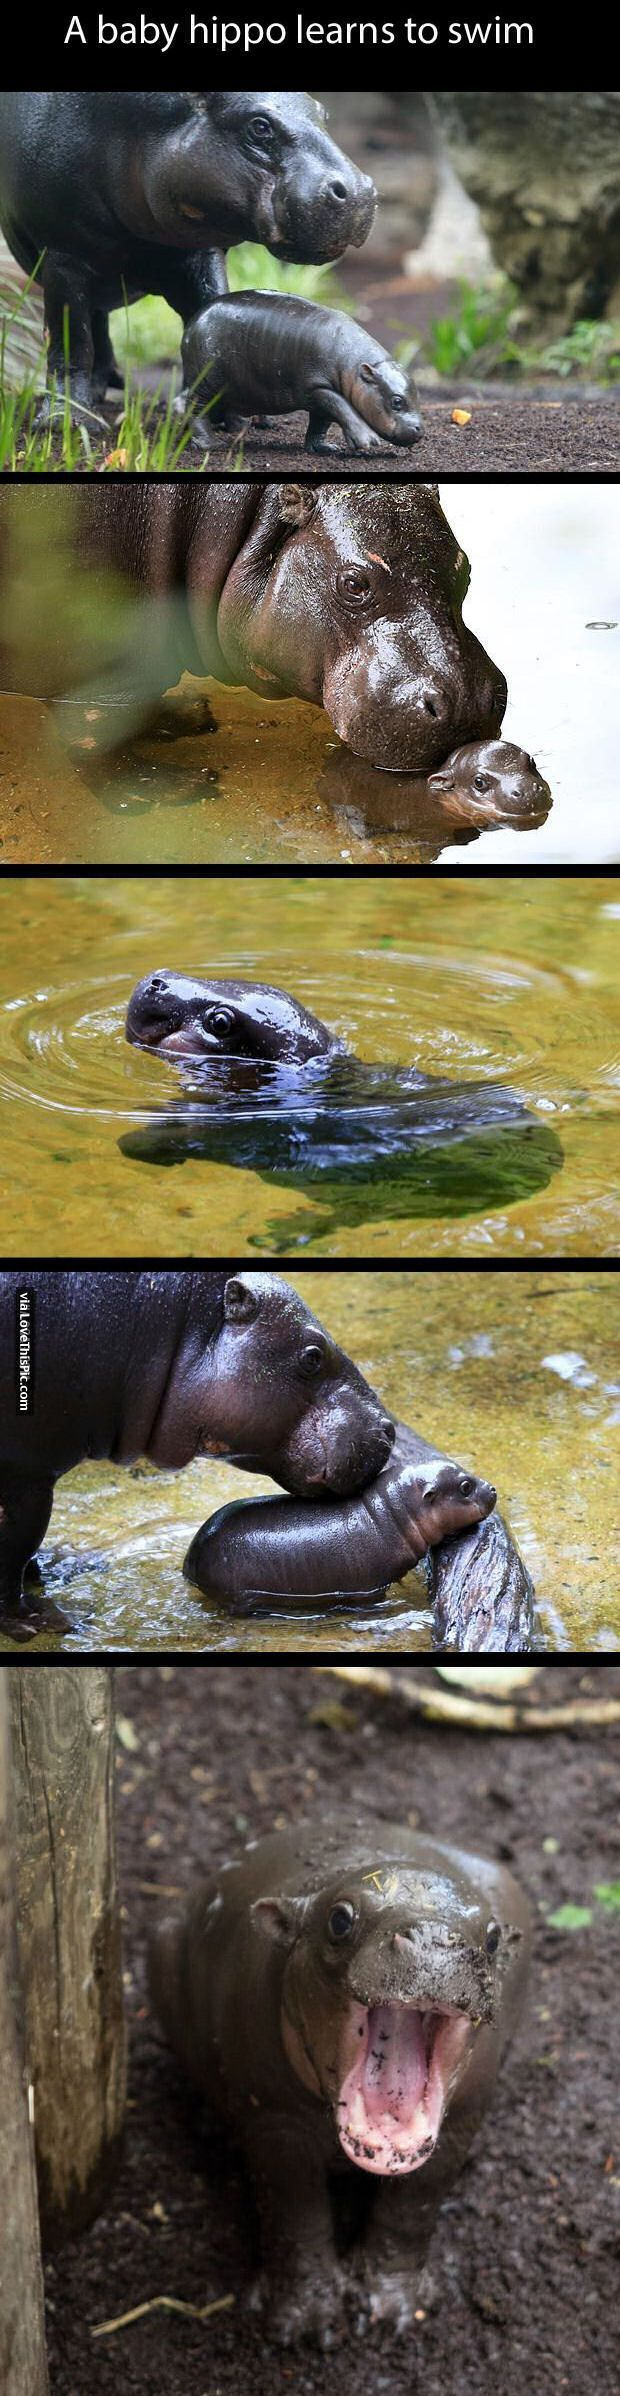 A Baby Hippo Learning How To Swim cute animals adorable animal baby animals wildlife wild life funny animals hippo #babyhippo